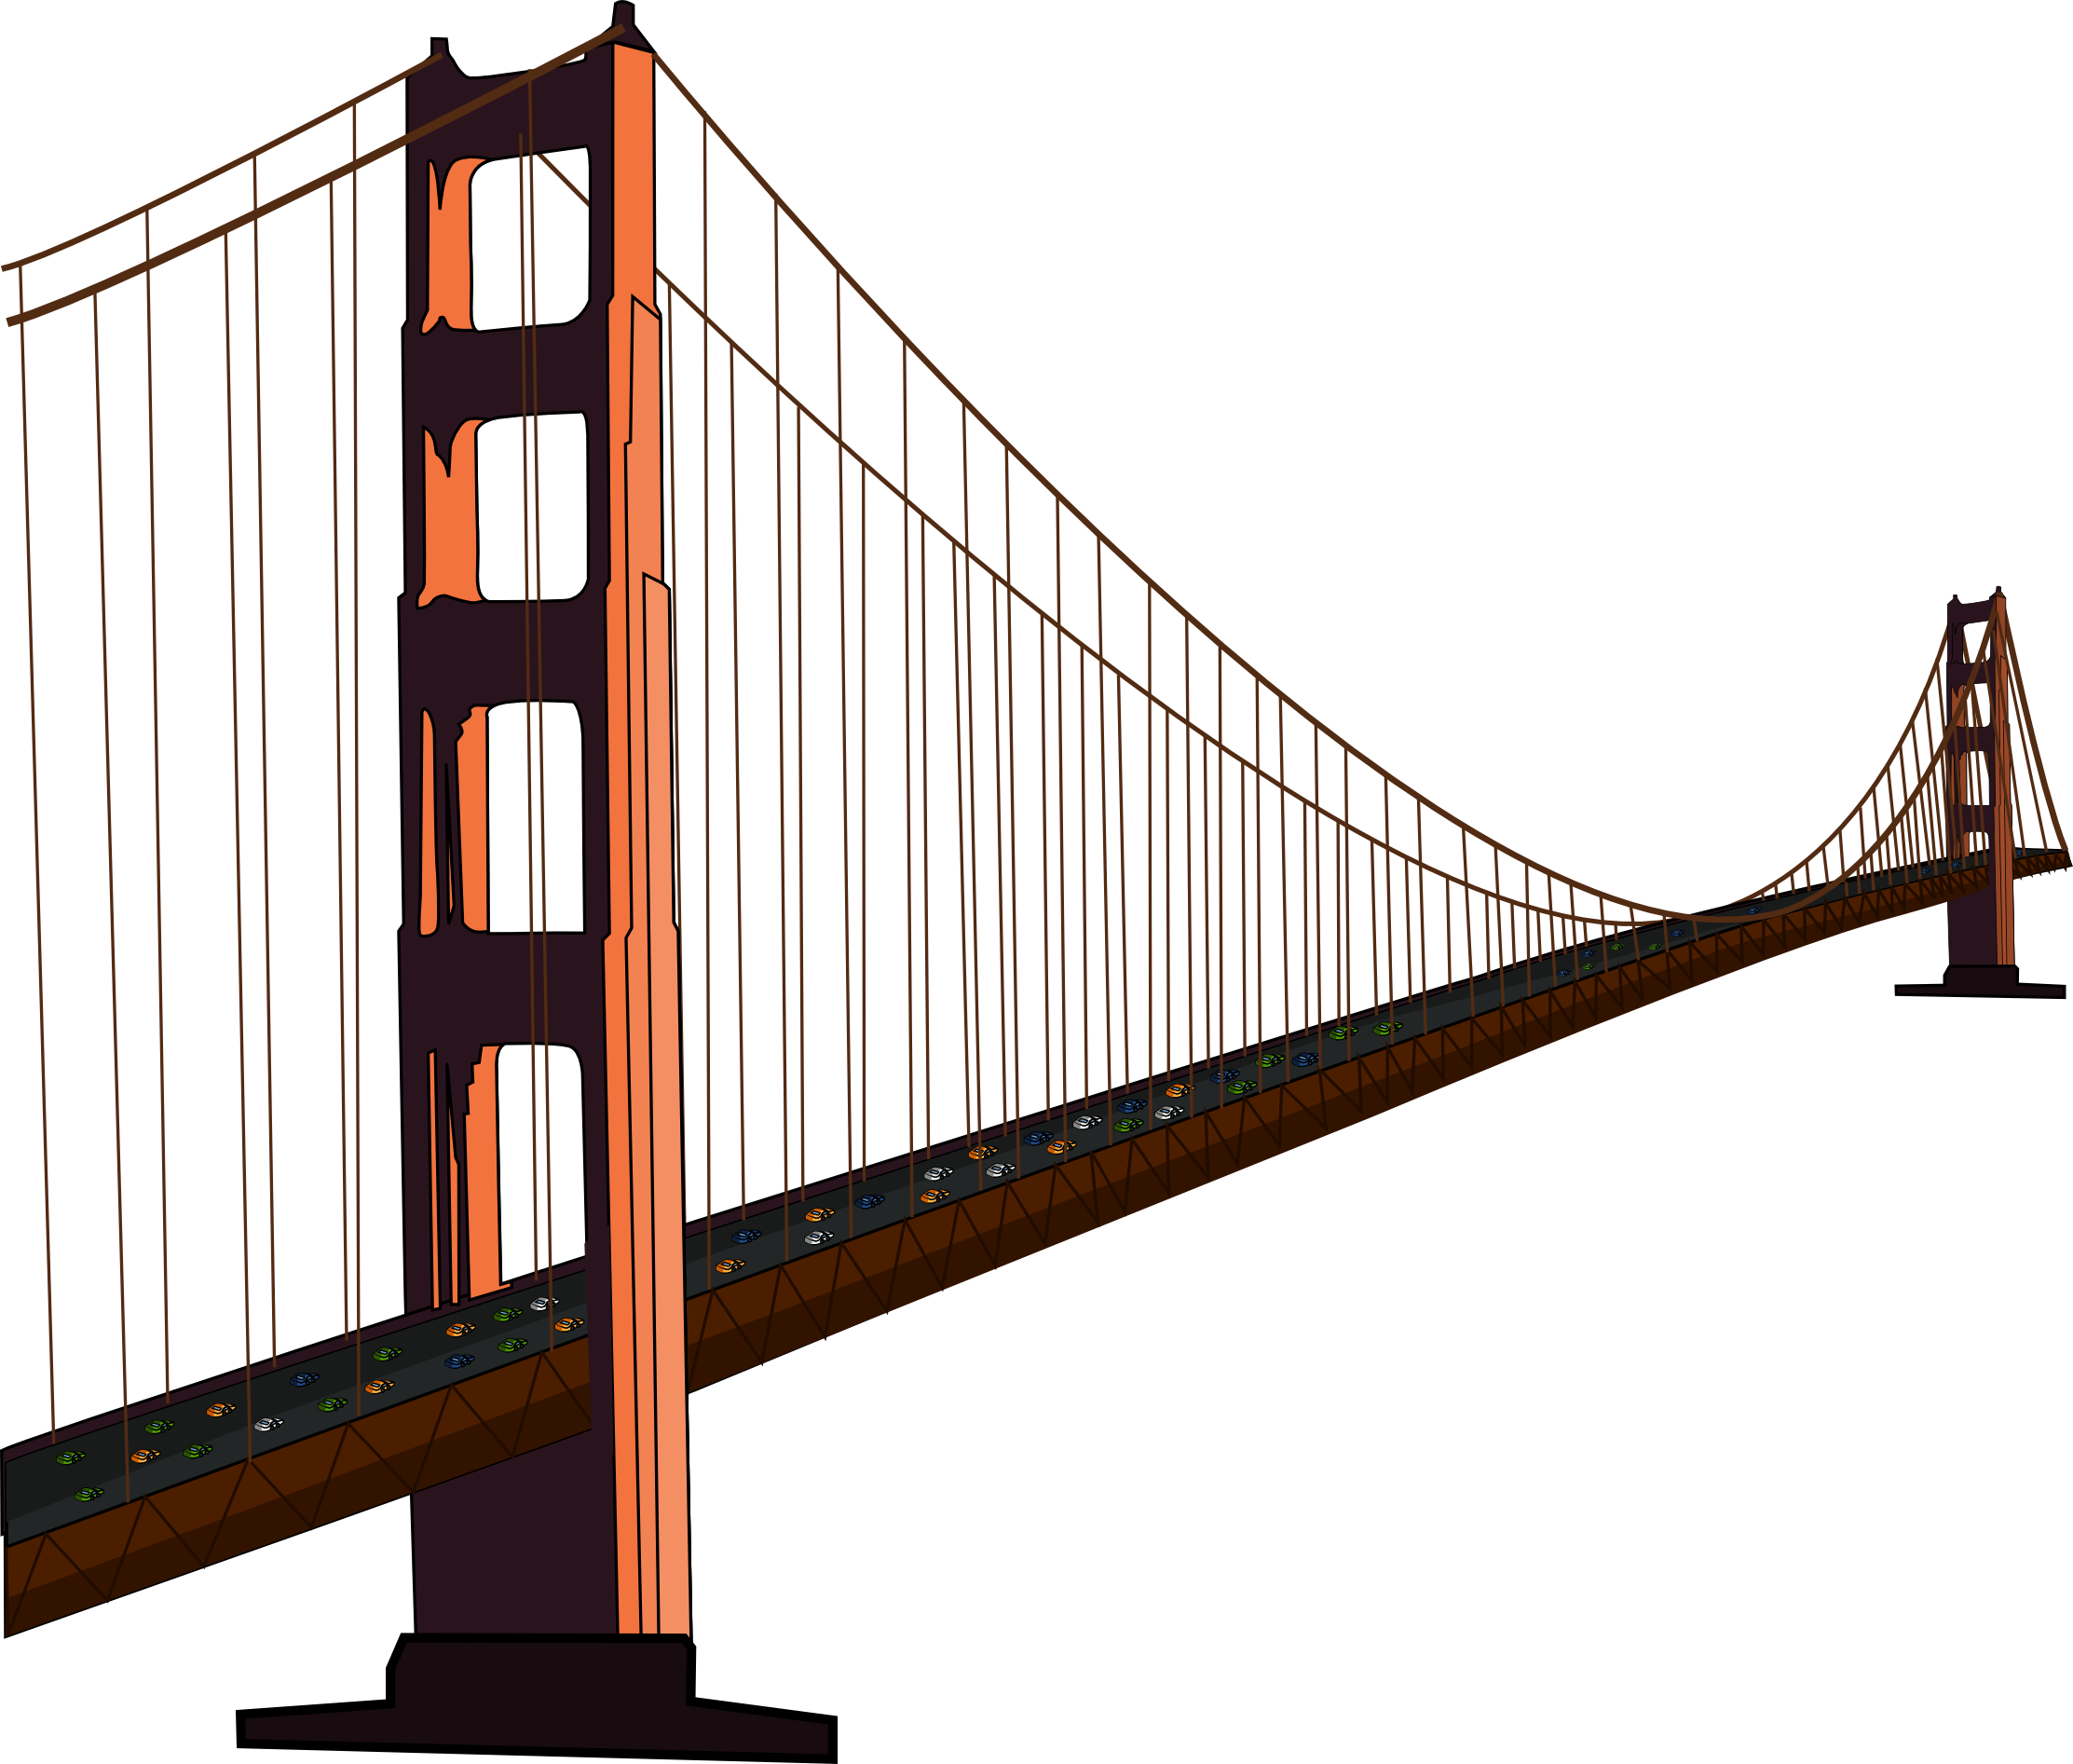 graphic freeuse Golden drawing clip art. Bridge clipart gold gate